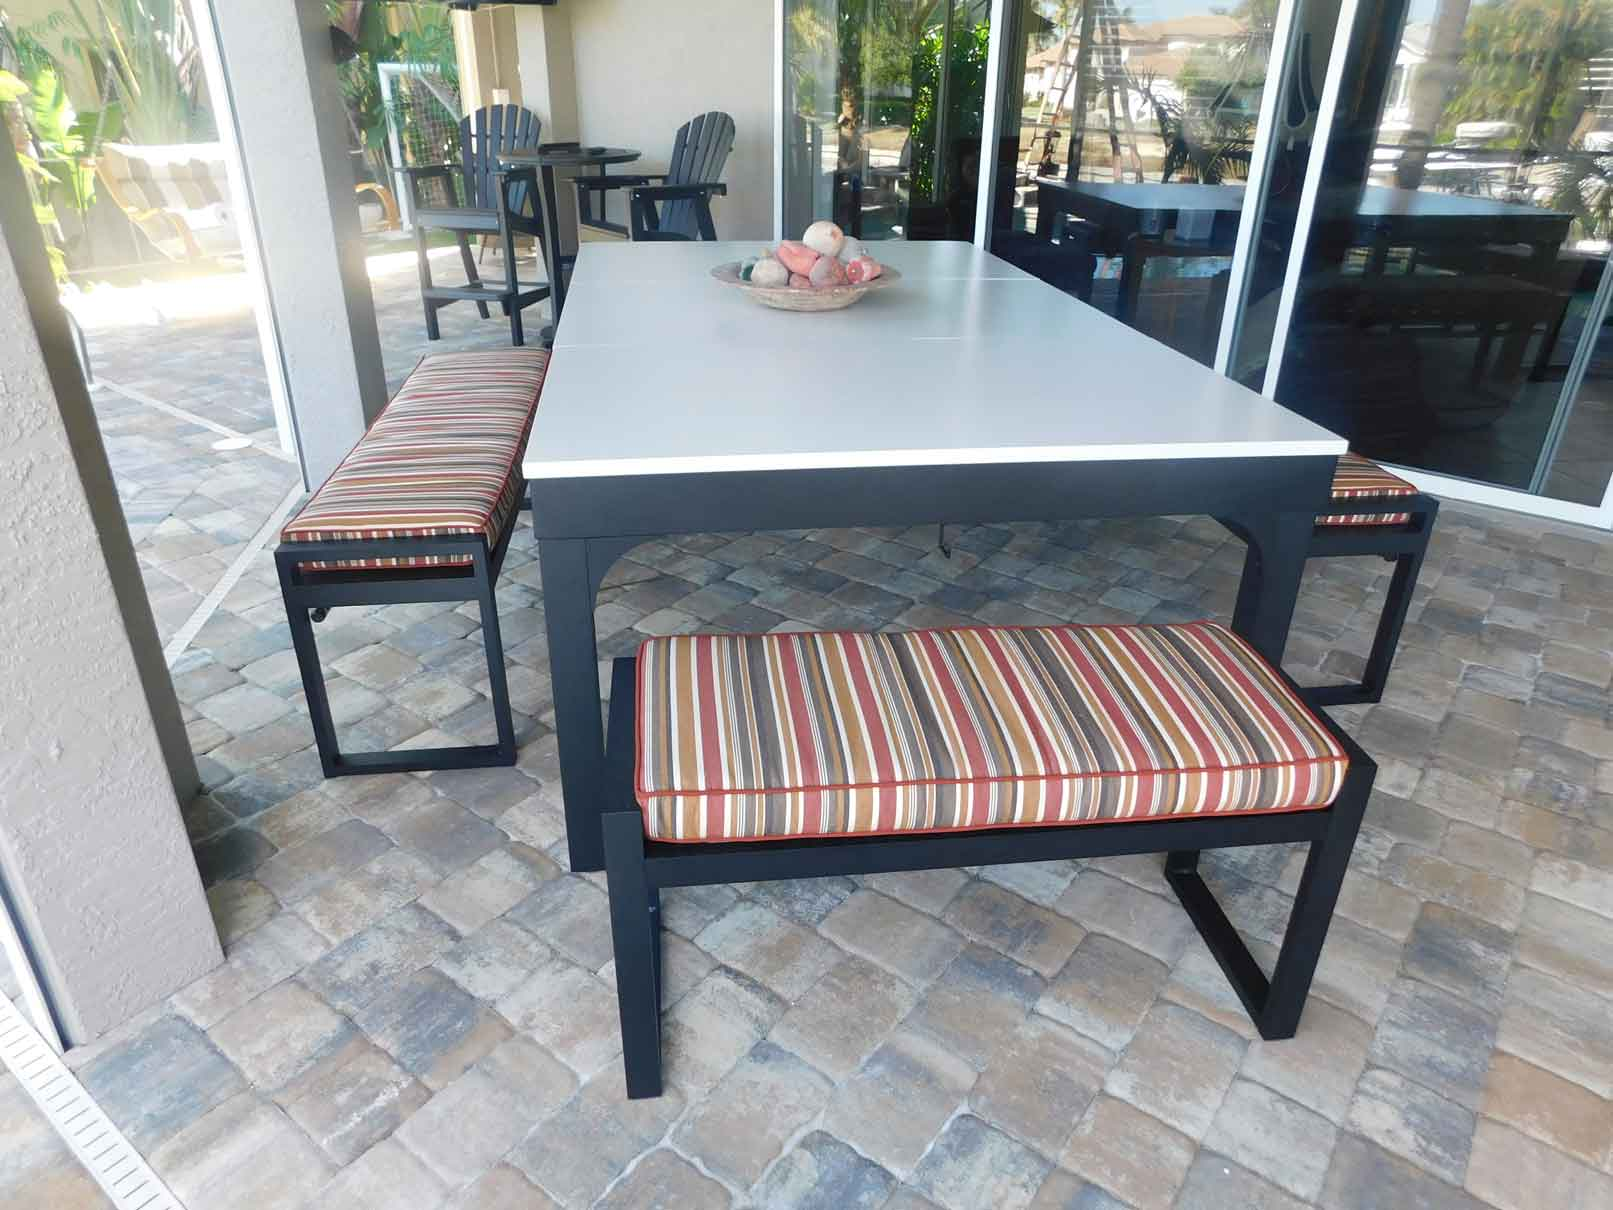 Balcony outdoor pool table and dining conversion top turns your table into an entertaining space